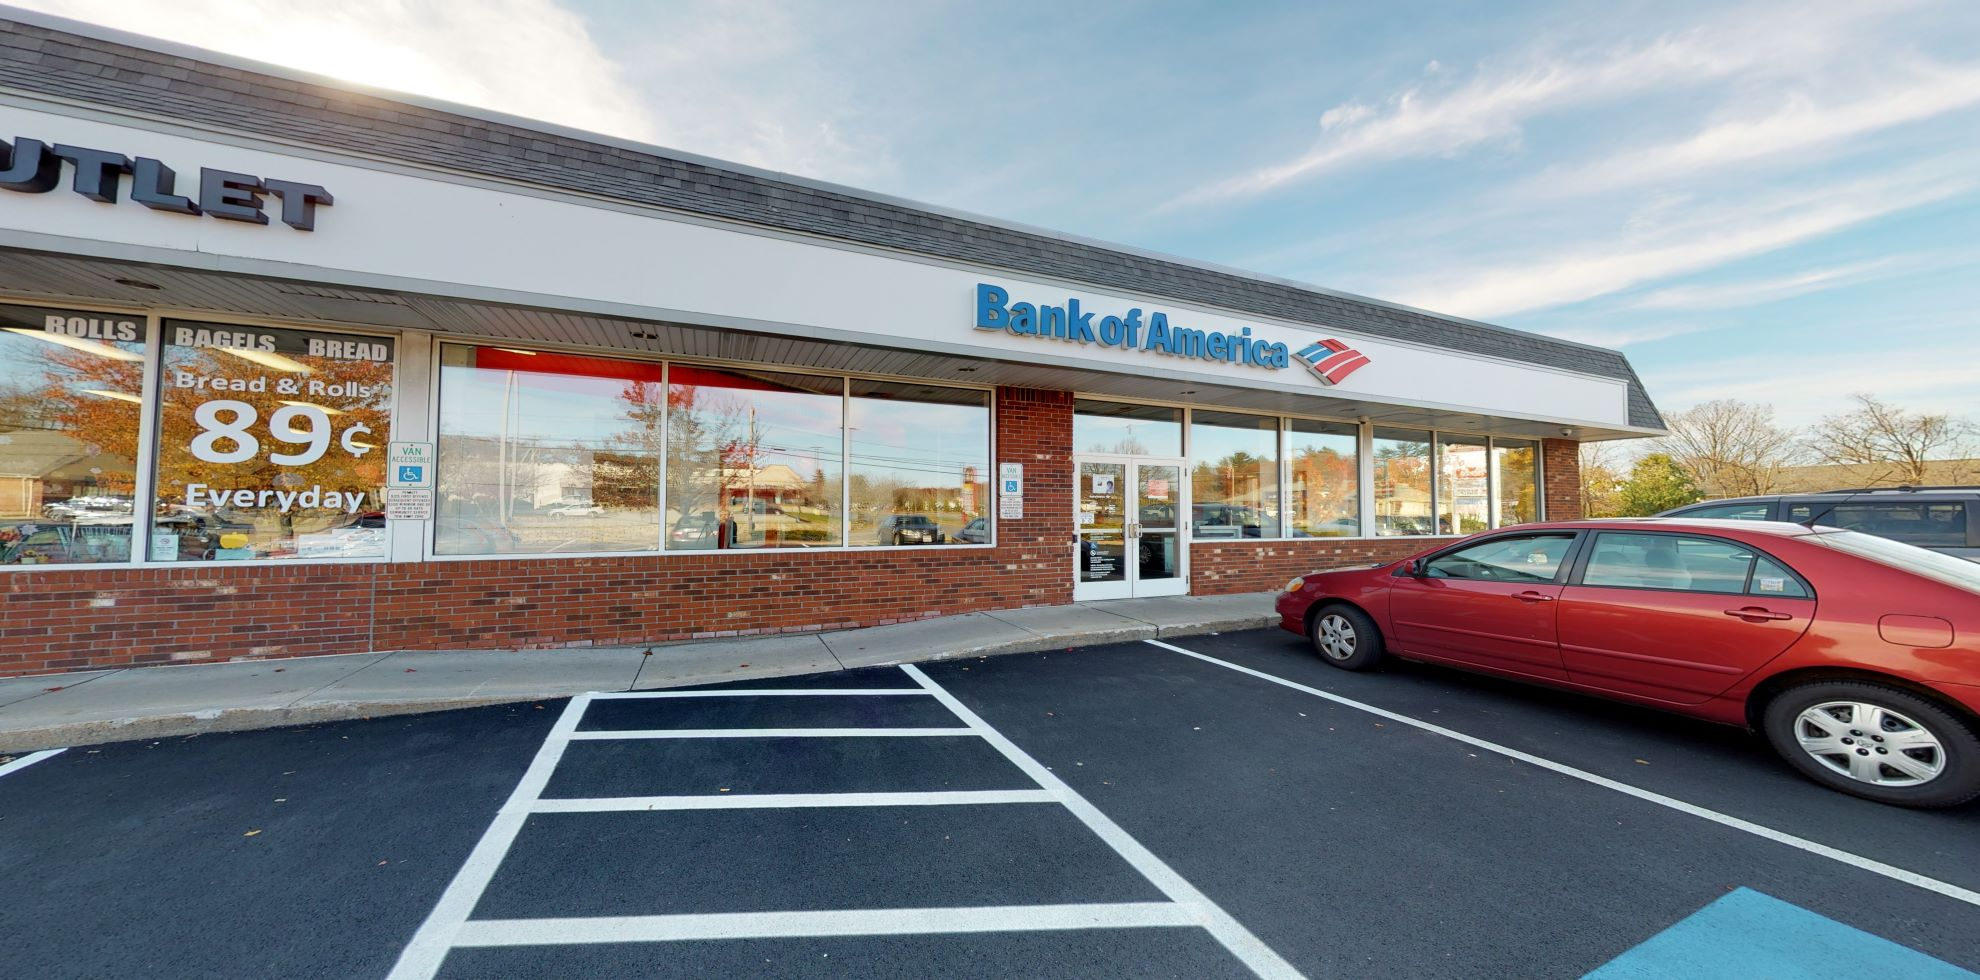 Bank of America financial center with walk-up ATM | 209 E Main St STE 1, Milford, MA 01757